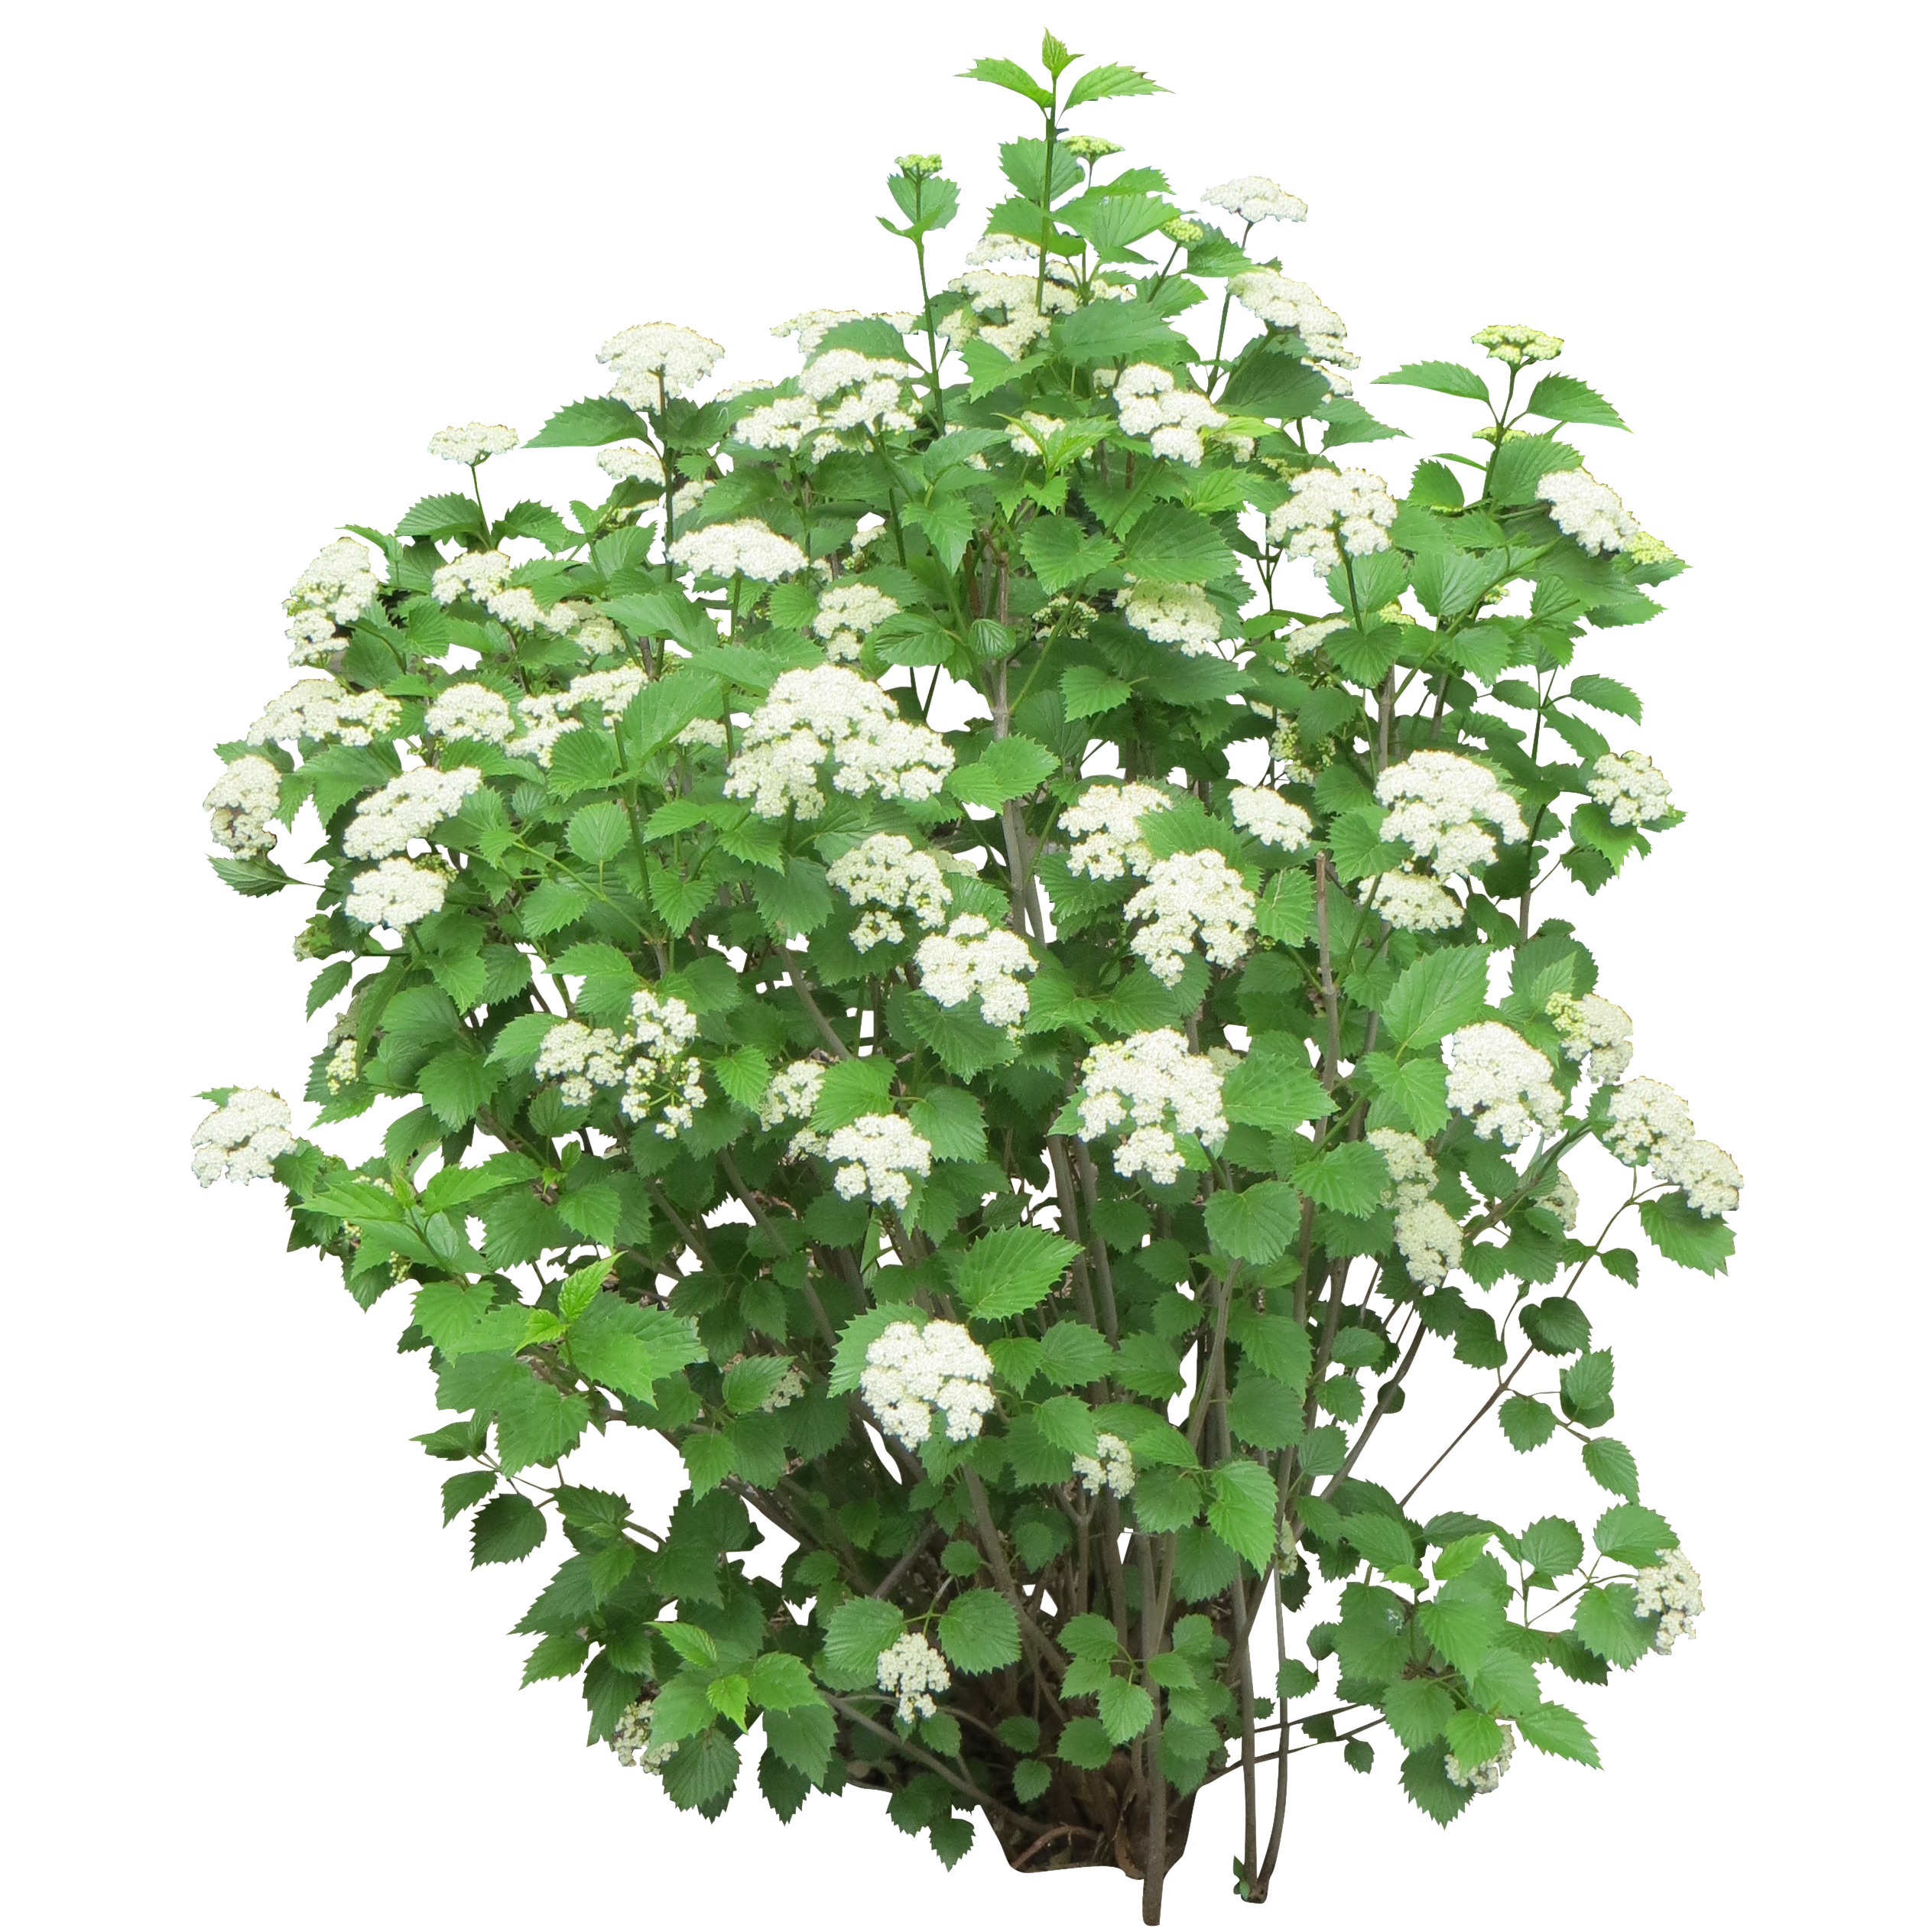 Flower bushes png. Bush image r no